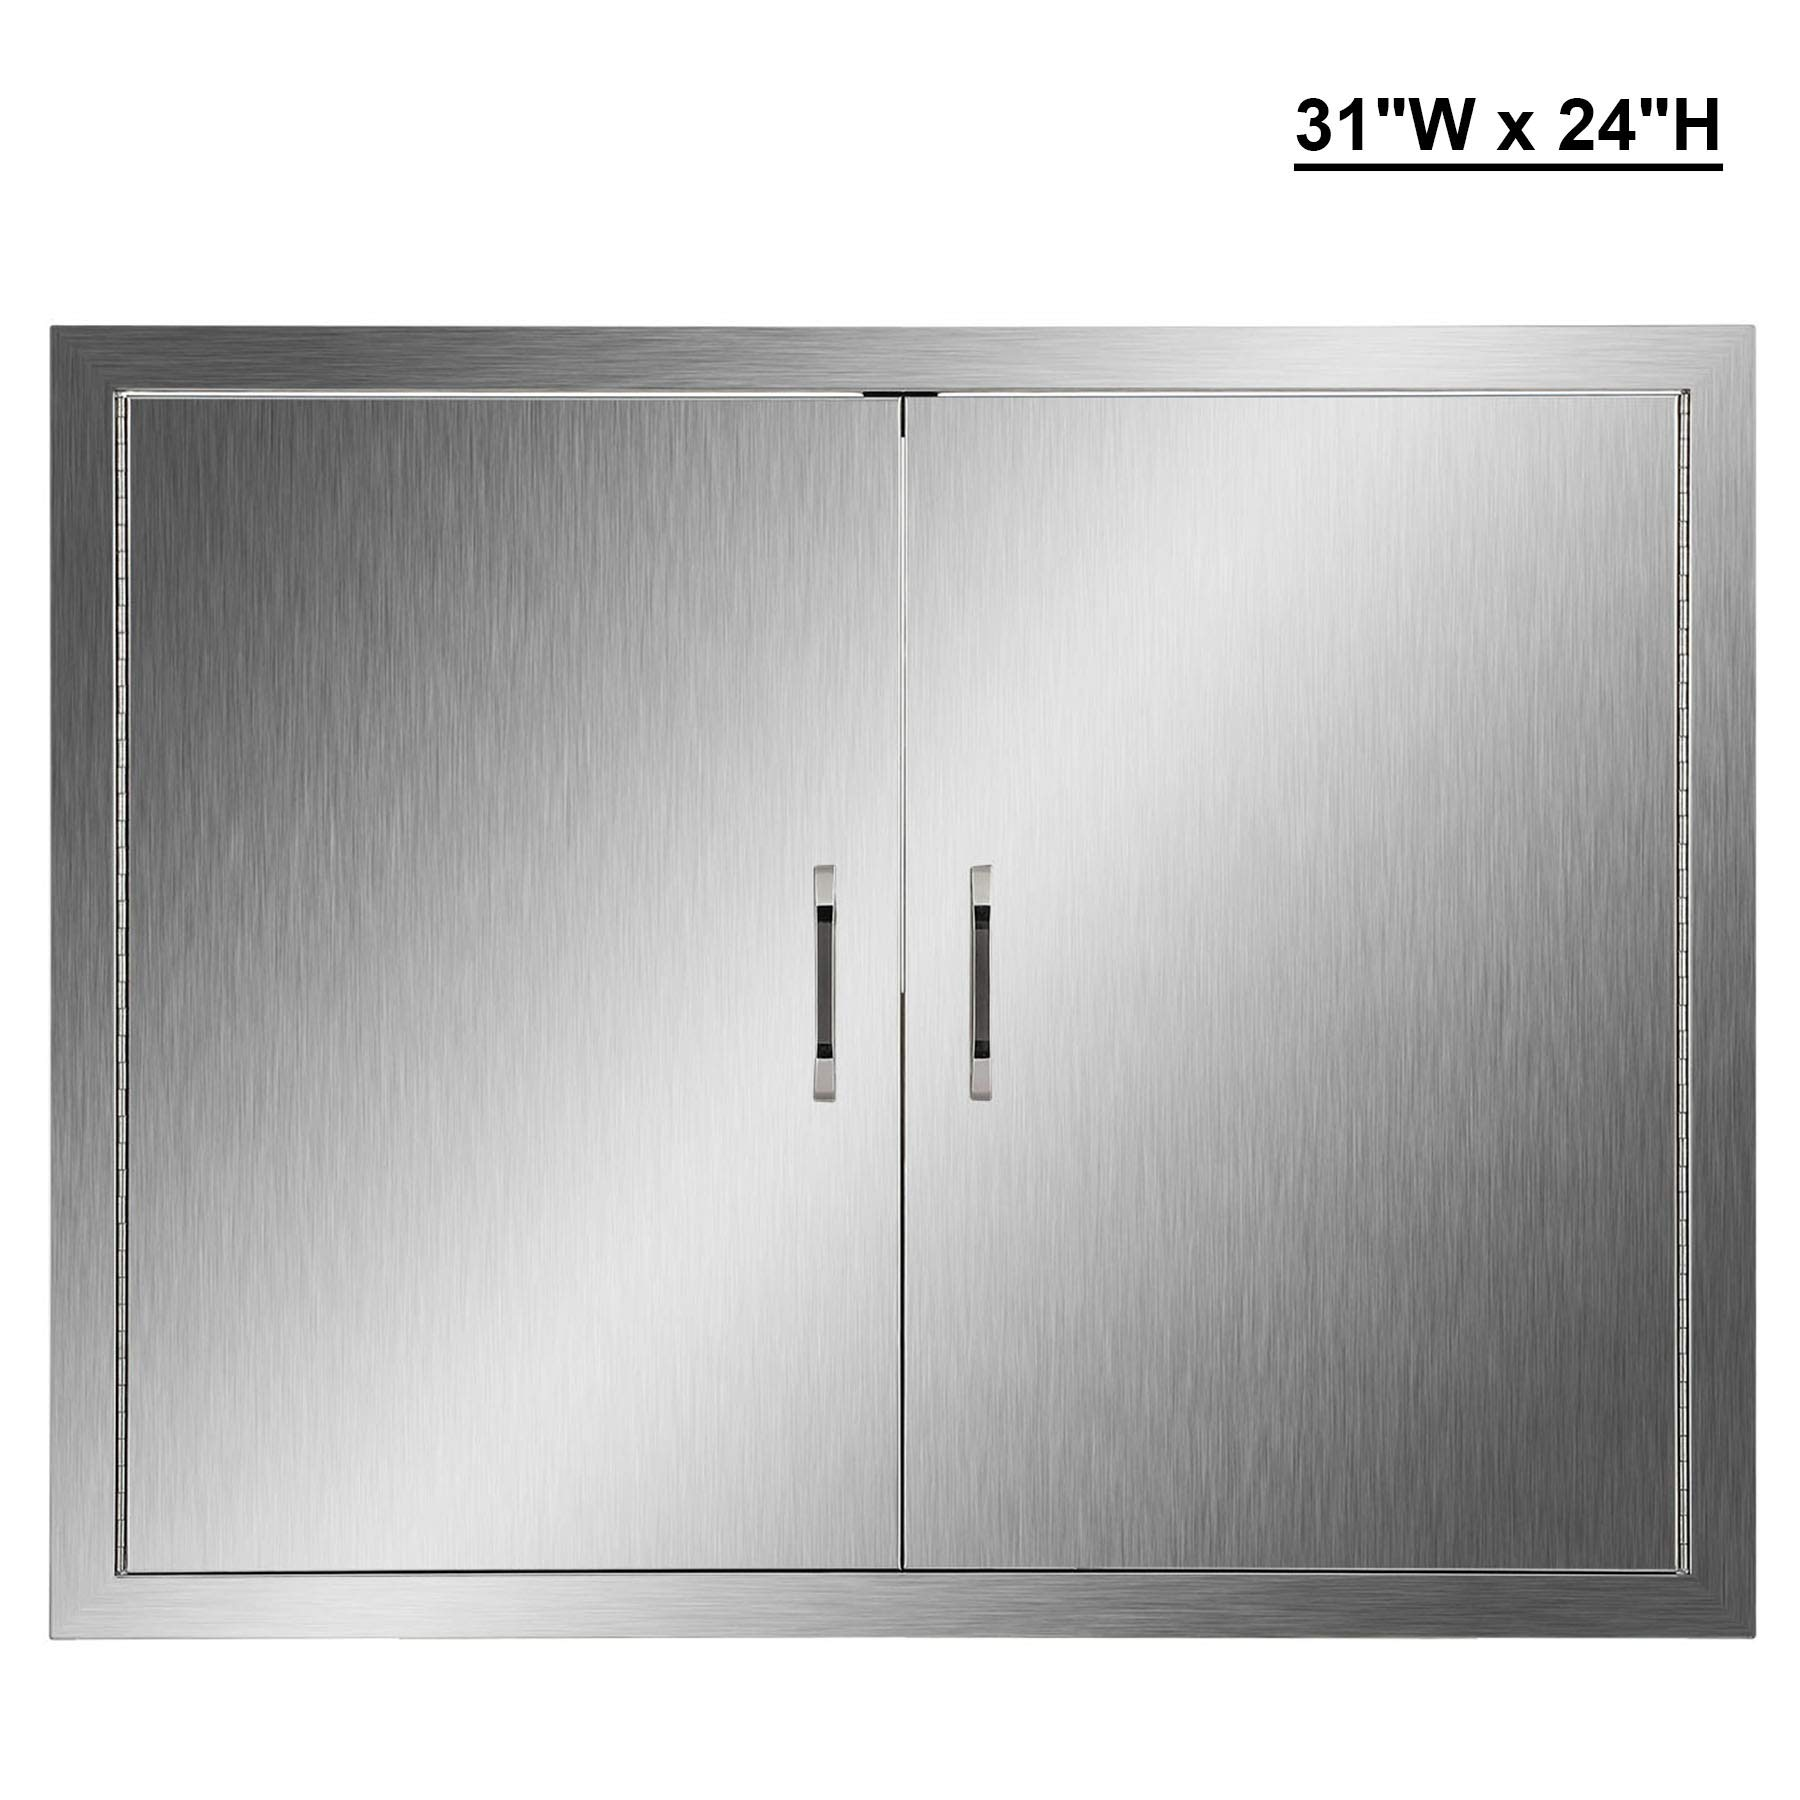 CO-Z Outdoor Kitchen Doors, 304 Brushed Stainless Steel Double BBQ Access Doors for Outdoor Kitchen, Commercial BBQ Island, Grilling Station, Outside Cabinet, Barbeque Grill, Built-in (31'' W x 24'' H) by CO-Z